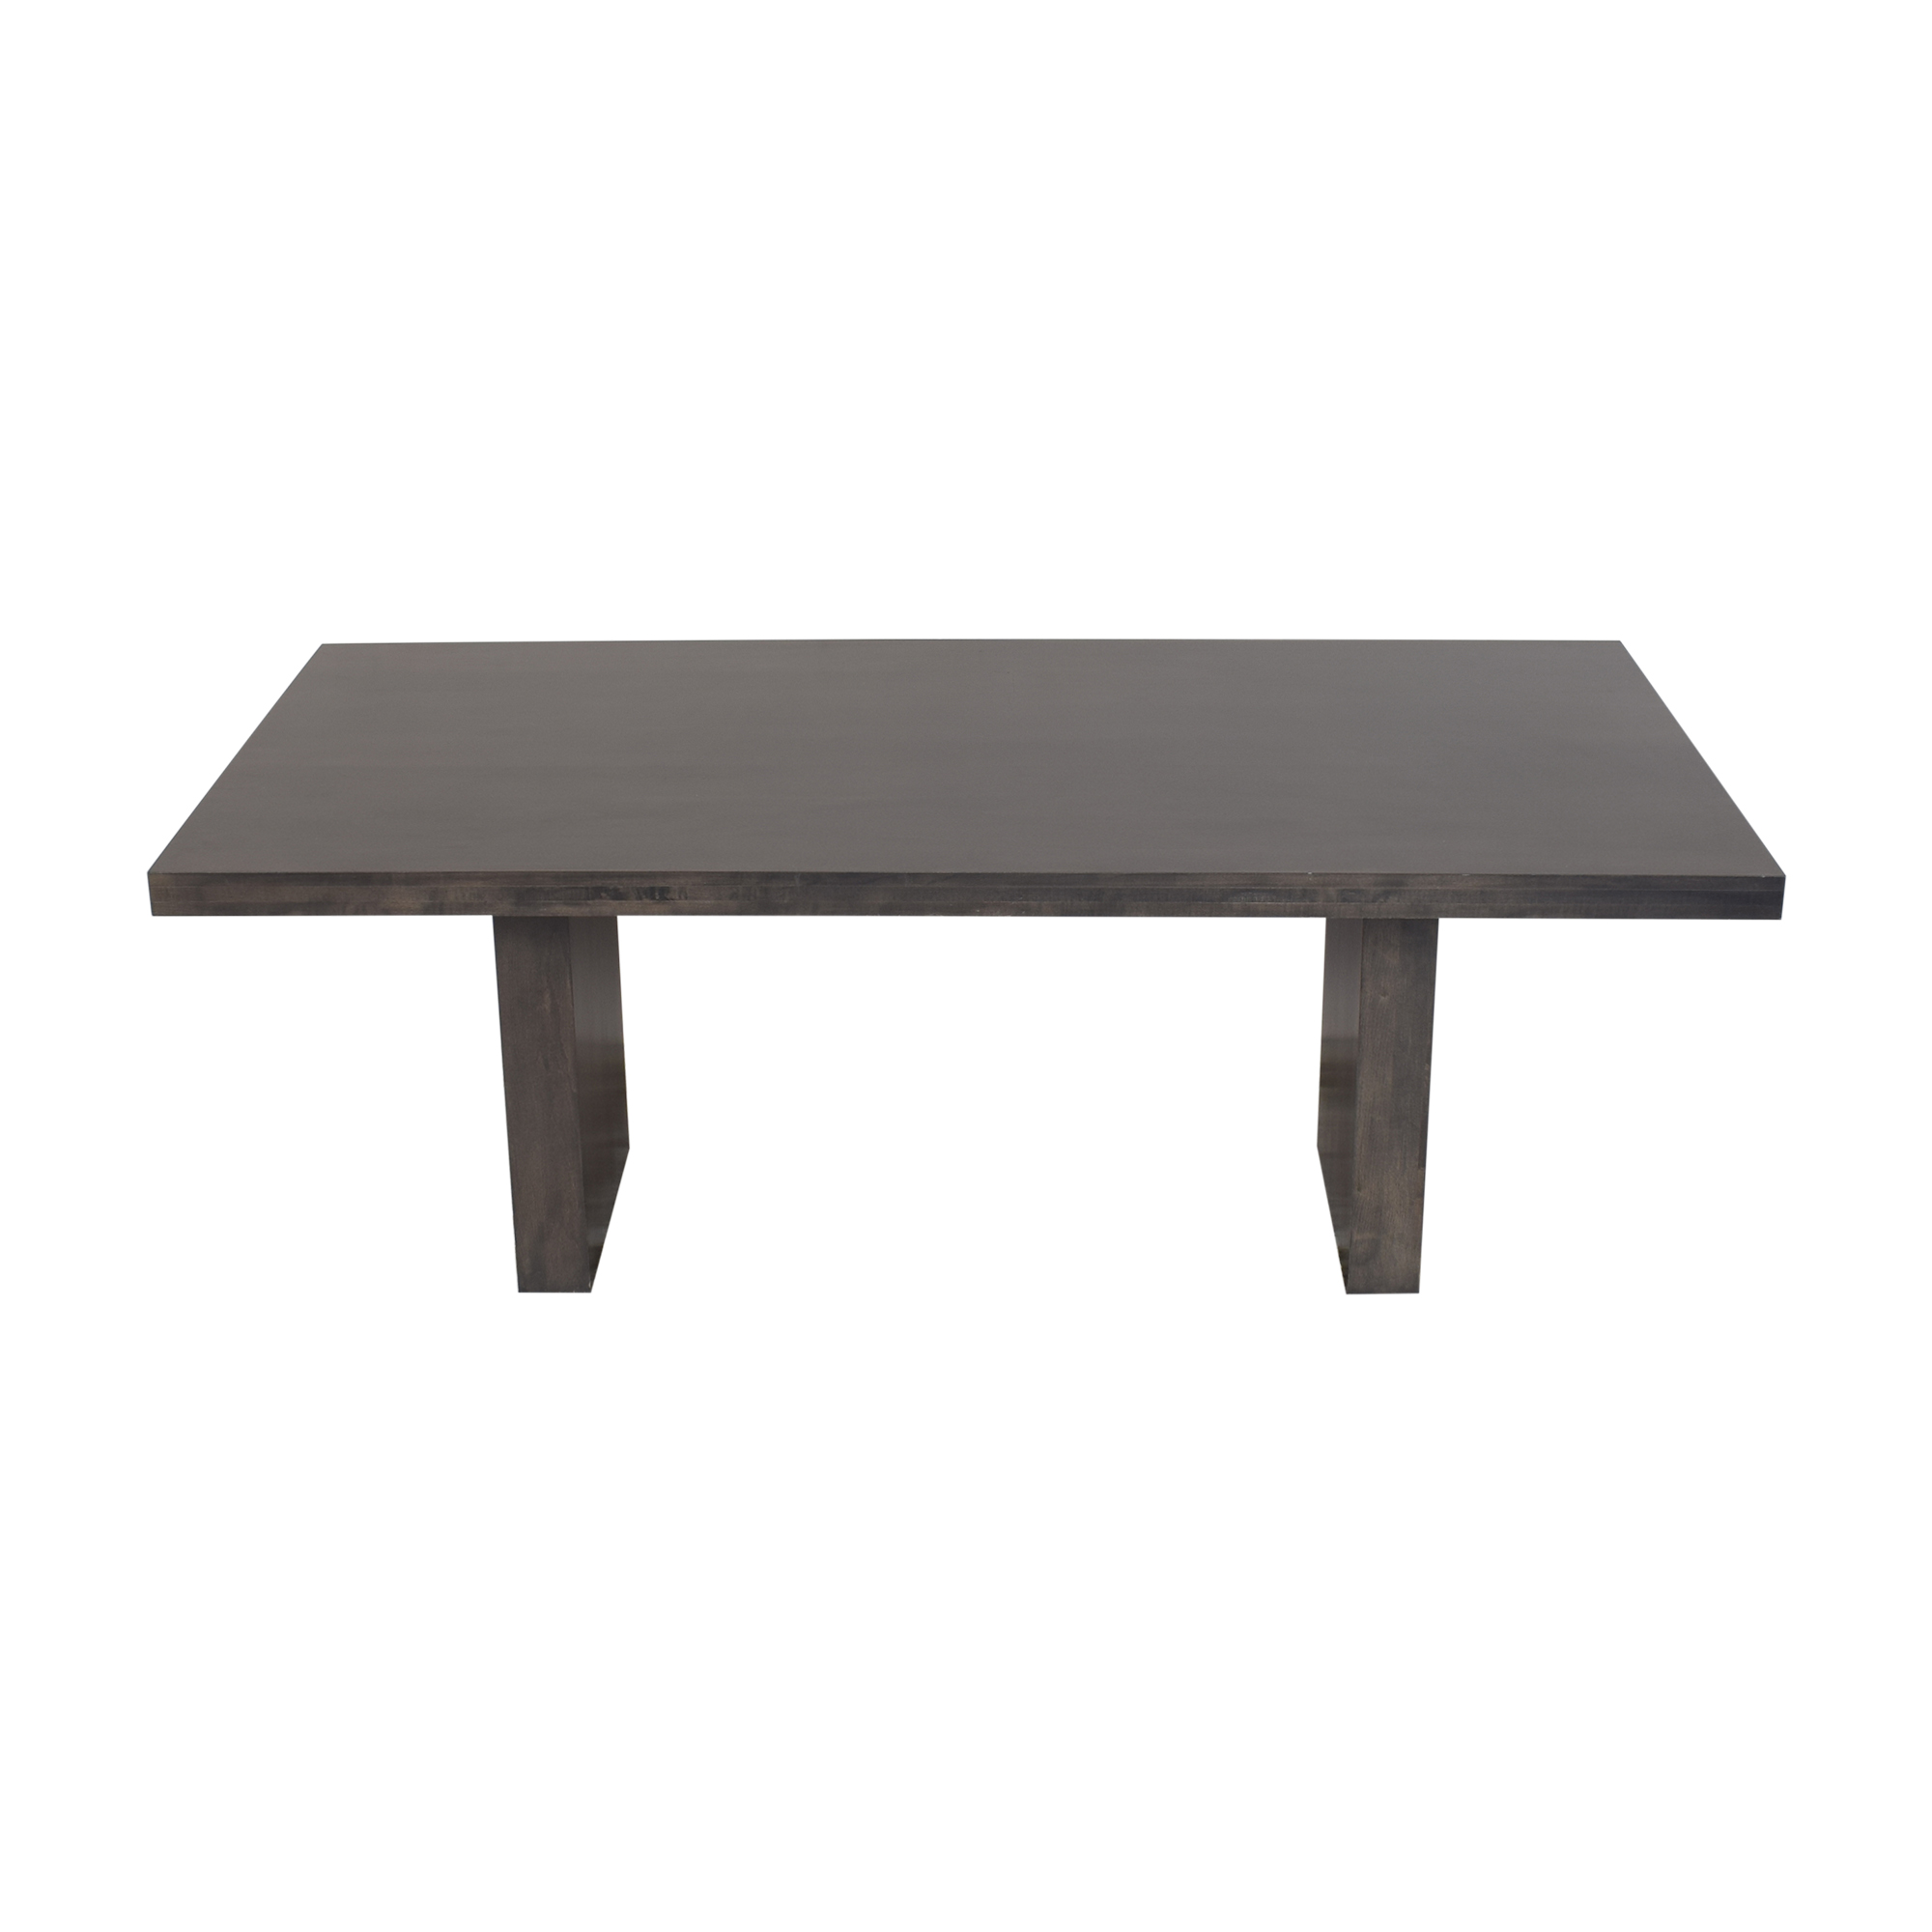 Bloomingdale's Double Pedestal Dining Table sale